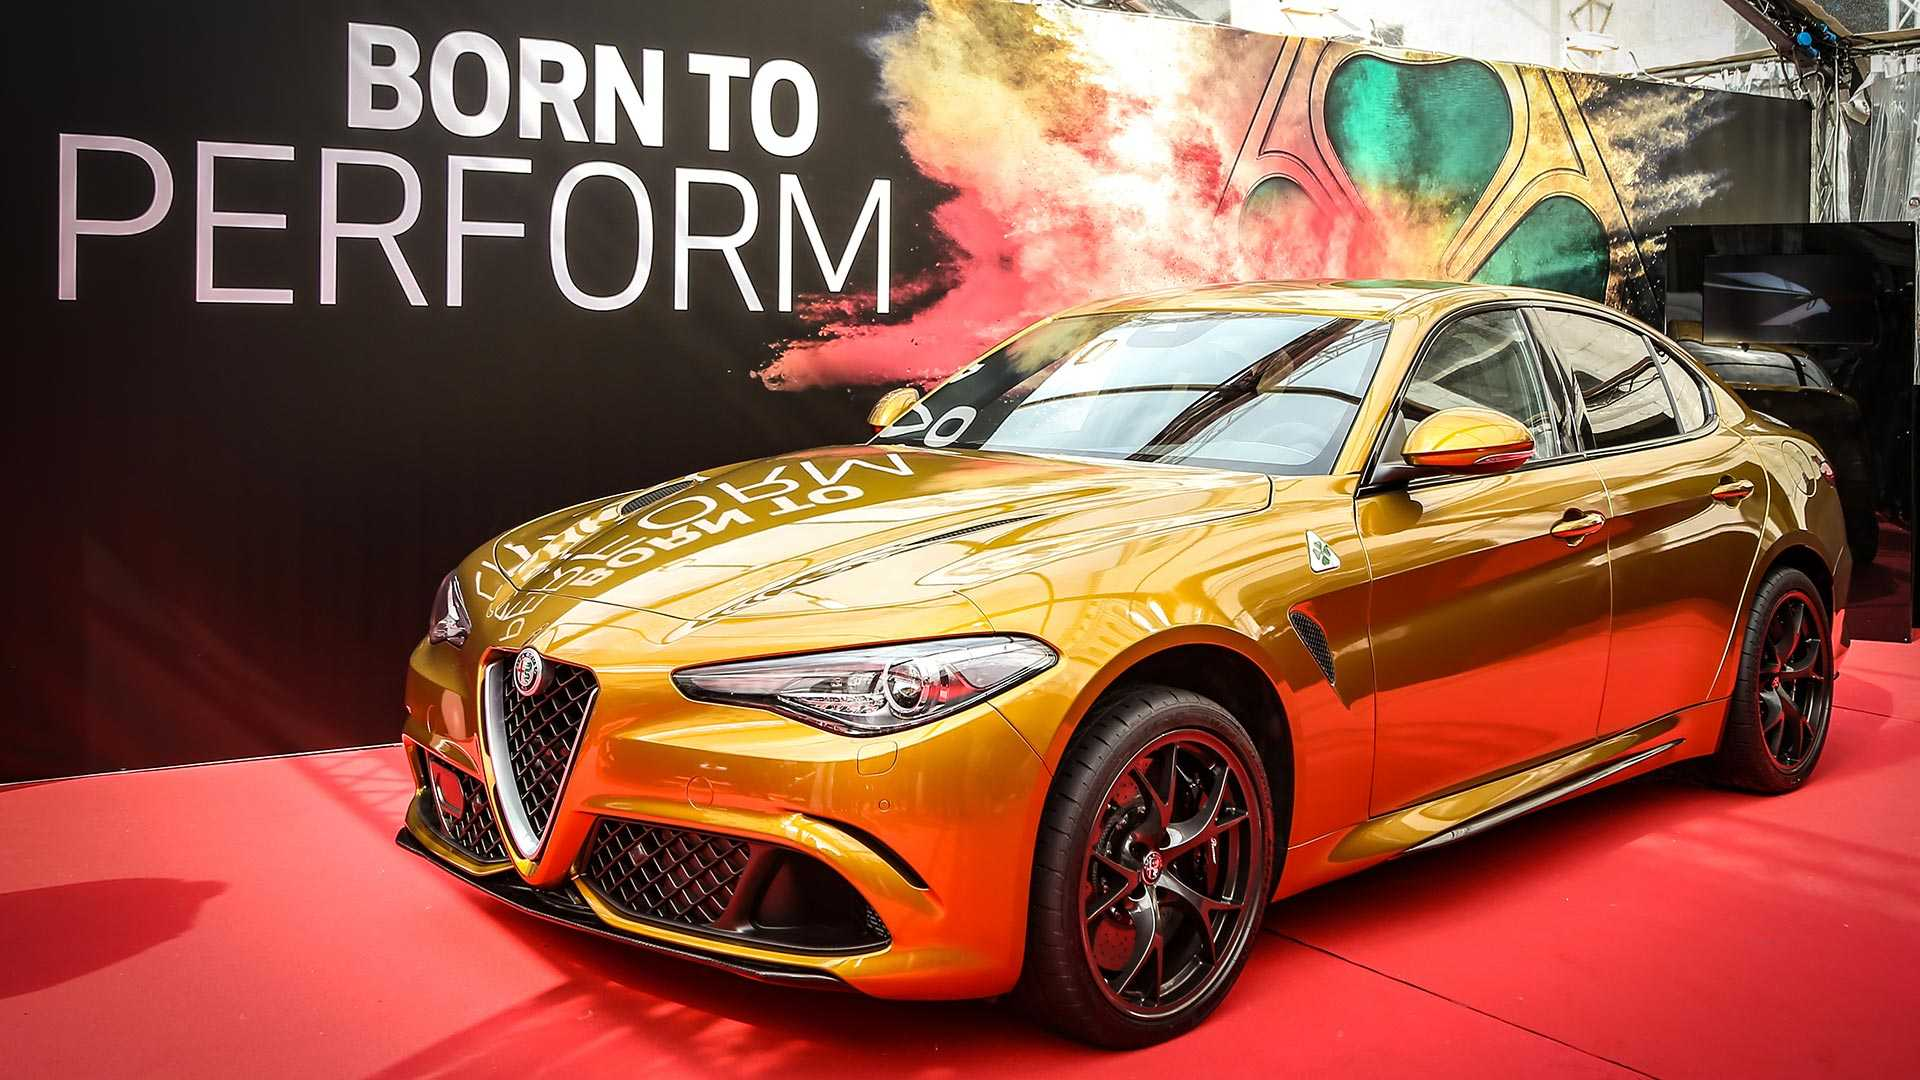 Alfa Romeo has taken the wraps off a very special Giulia Quadrifoglio supercar flaunting a shimmering golden livery